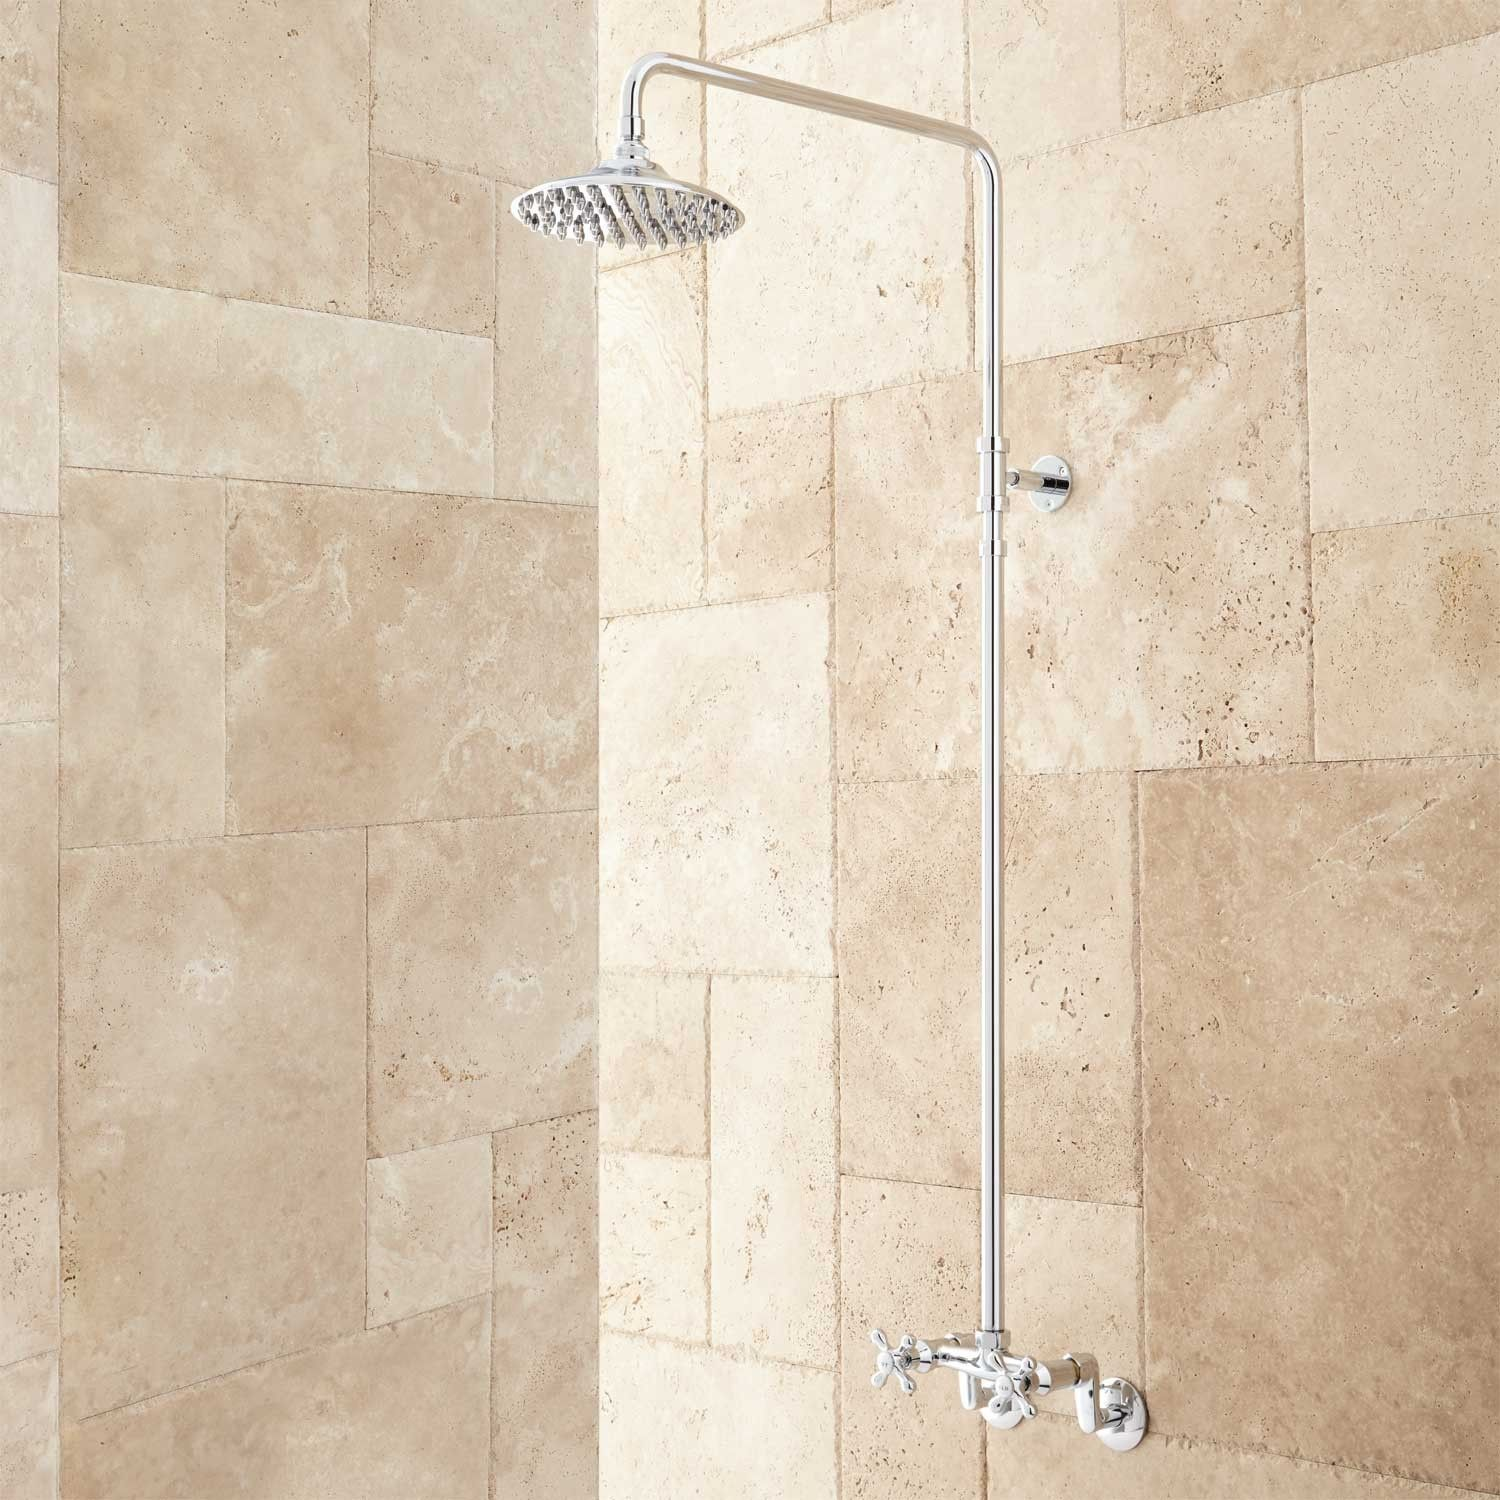 Netta Exposed Pipe Shower with Rainfall Shower Head | Pipes, Chrome ...